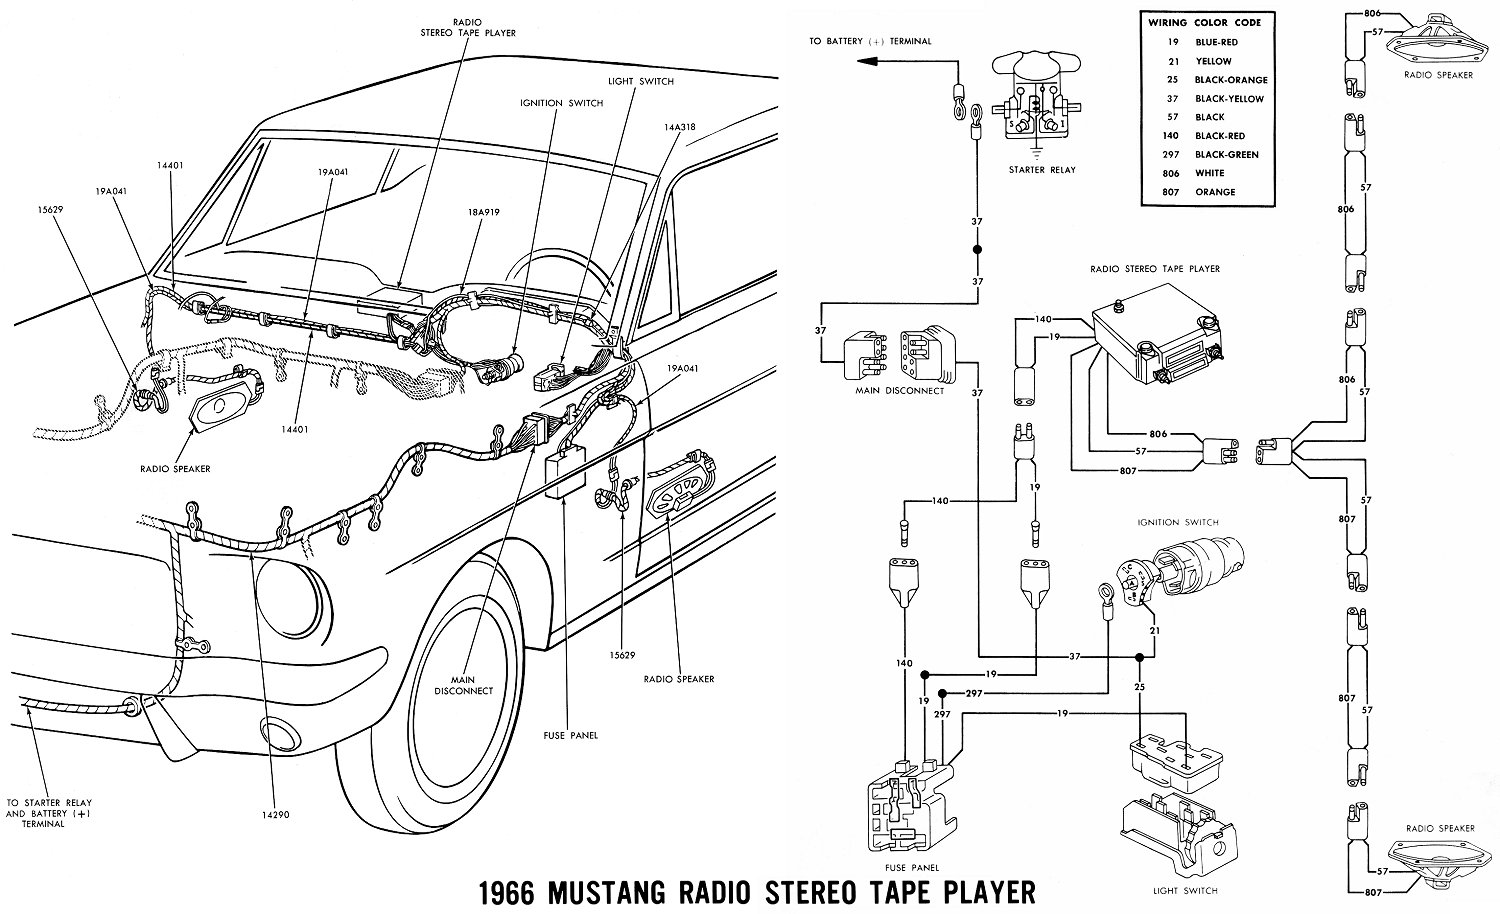 1966 Mustang Wiring Diagrams Average Joe Restoration Ford Cars Diagram Sm66ste